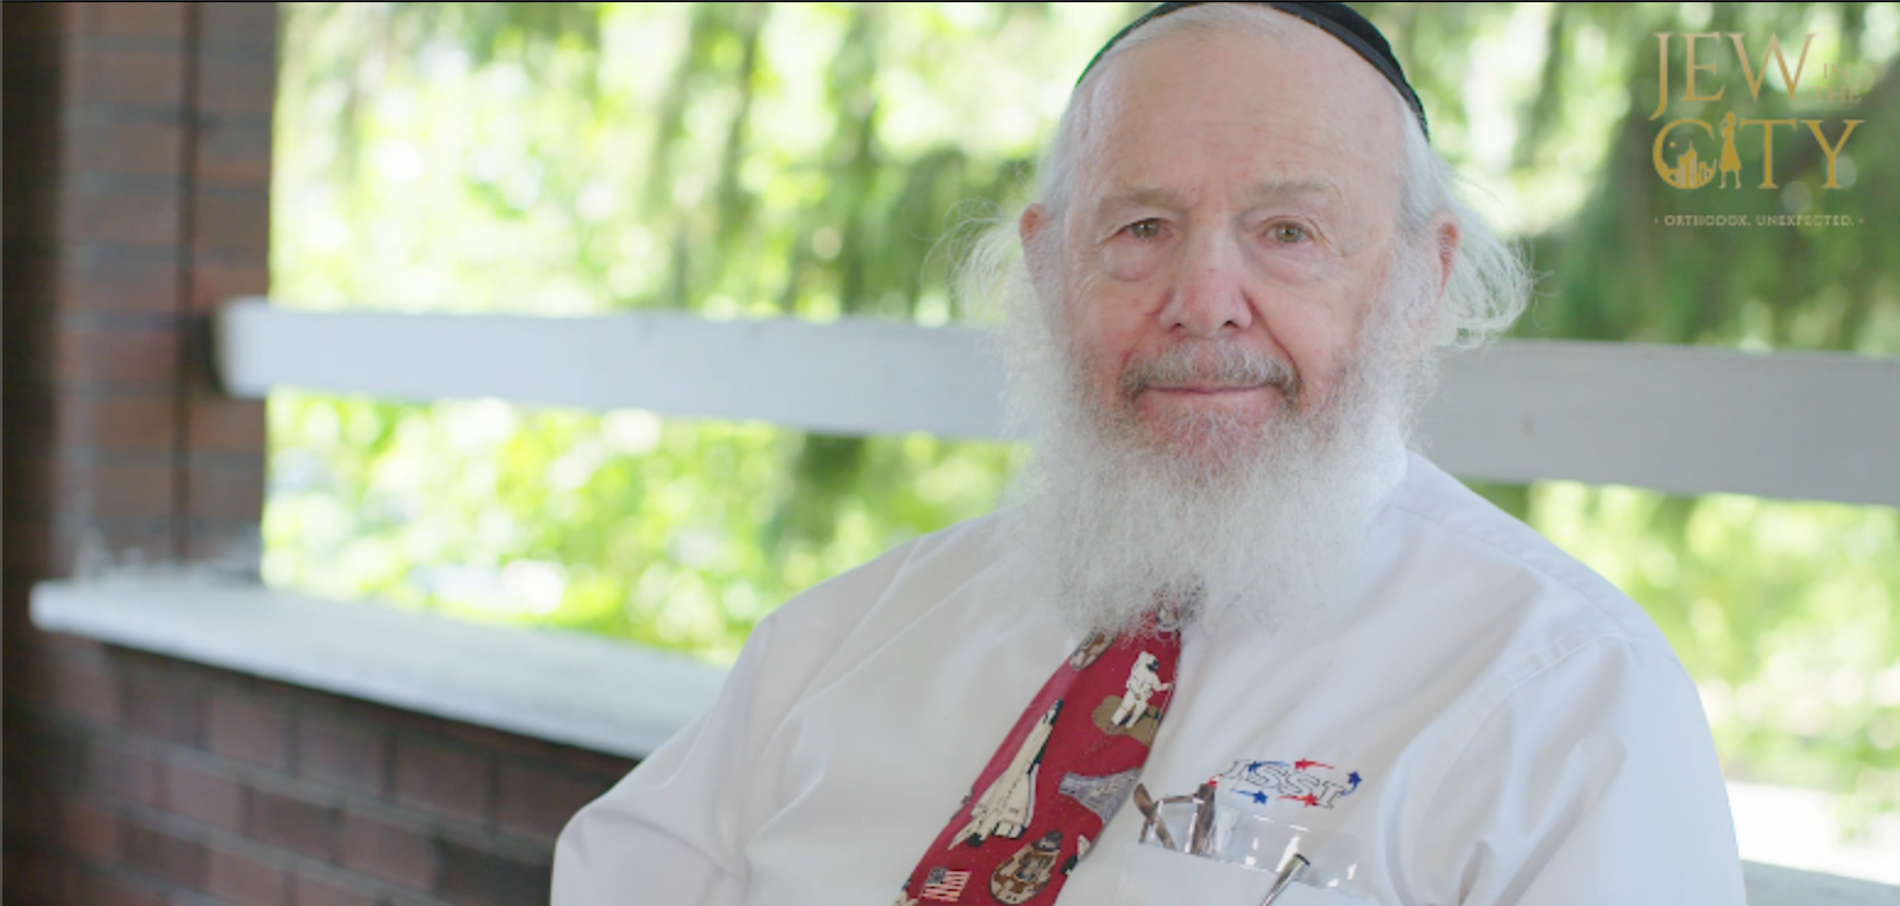 Meet Orthodox Jewish All Star, Jerry Wittenstein, Who Developed Half Of Apollo 11's Trajectories